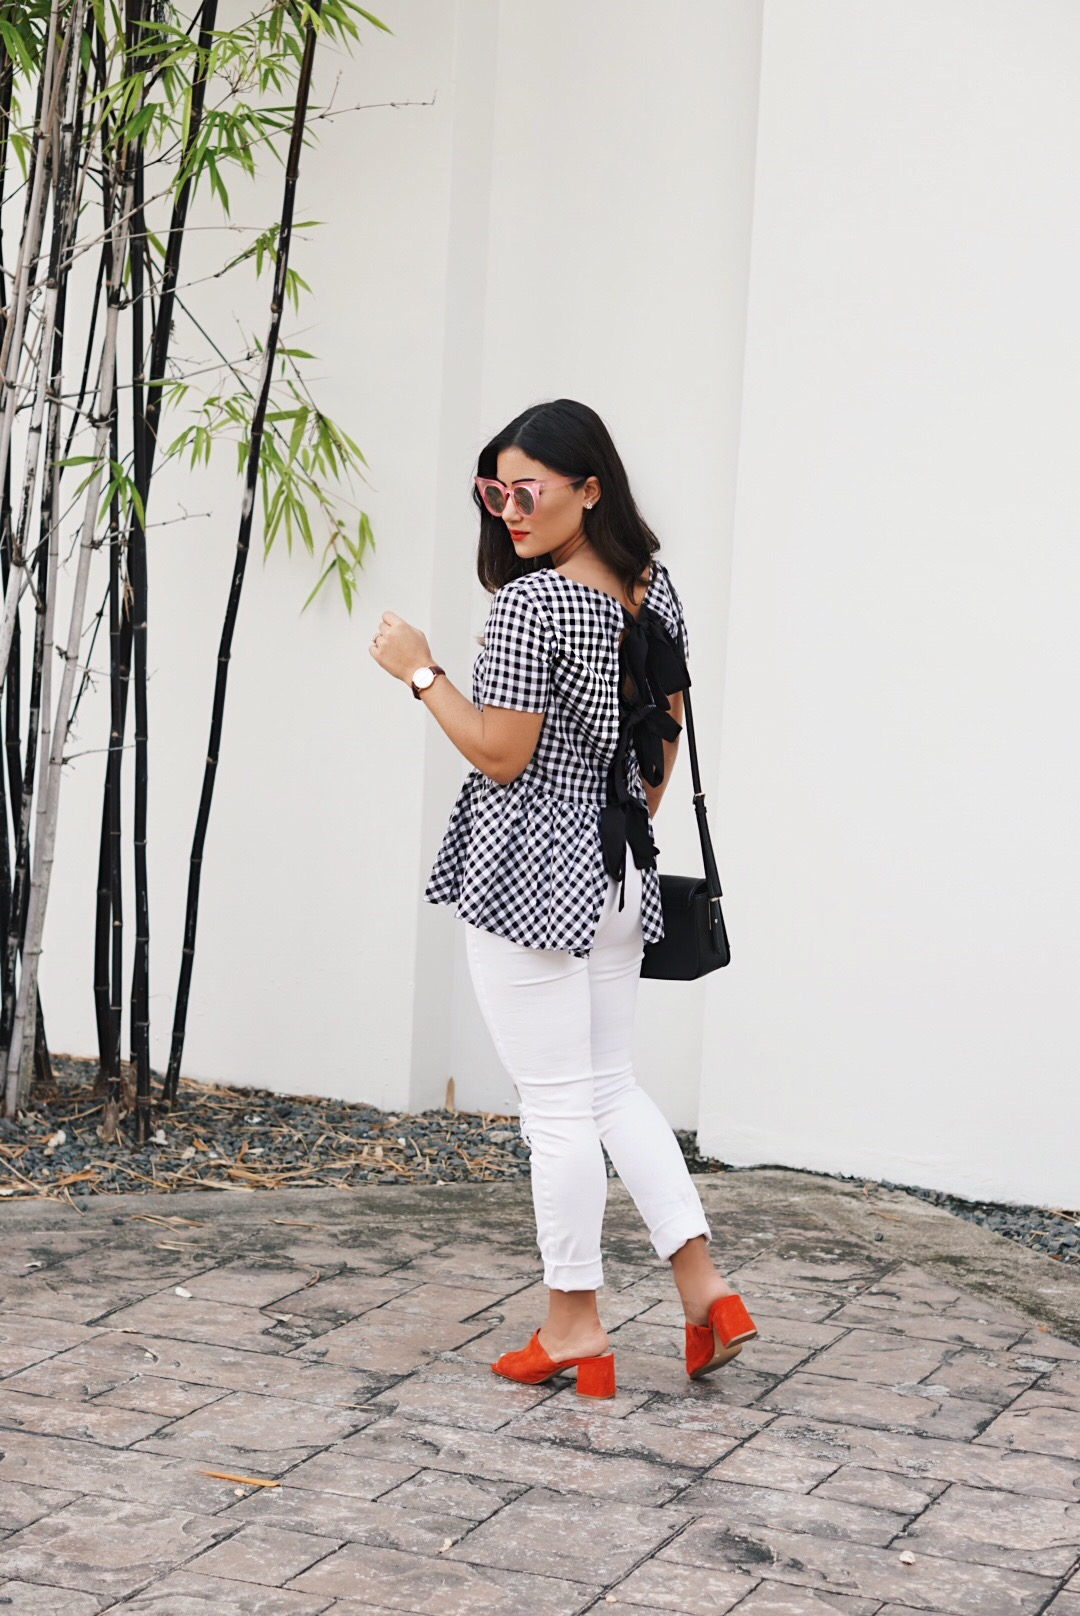 Sugar Love Chic blogger Krista Perez styles classic gingham summer outfit